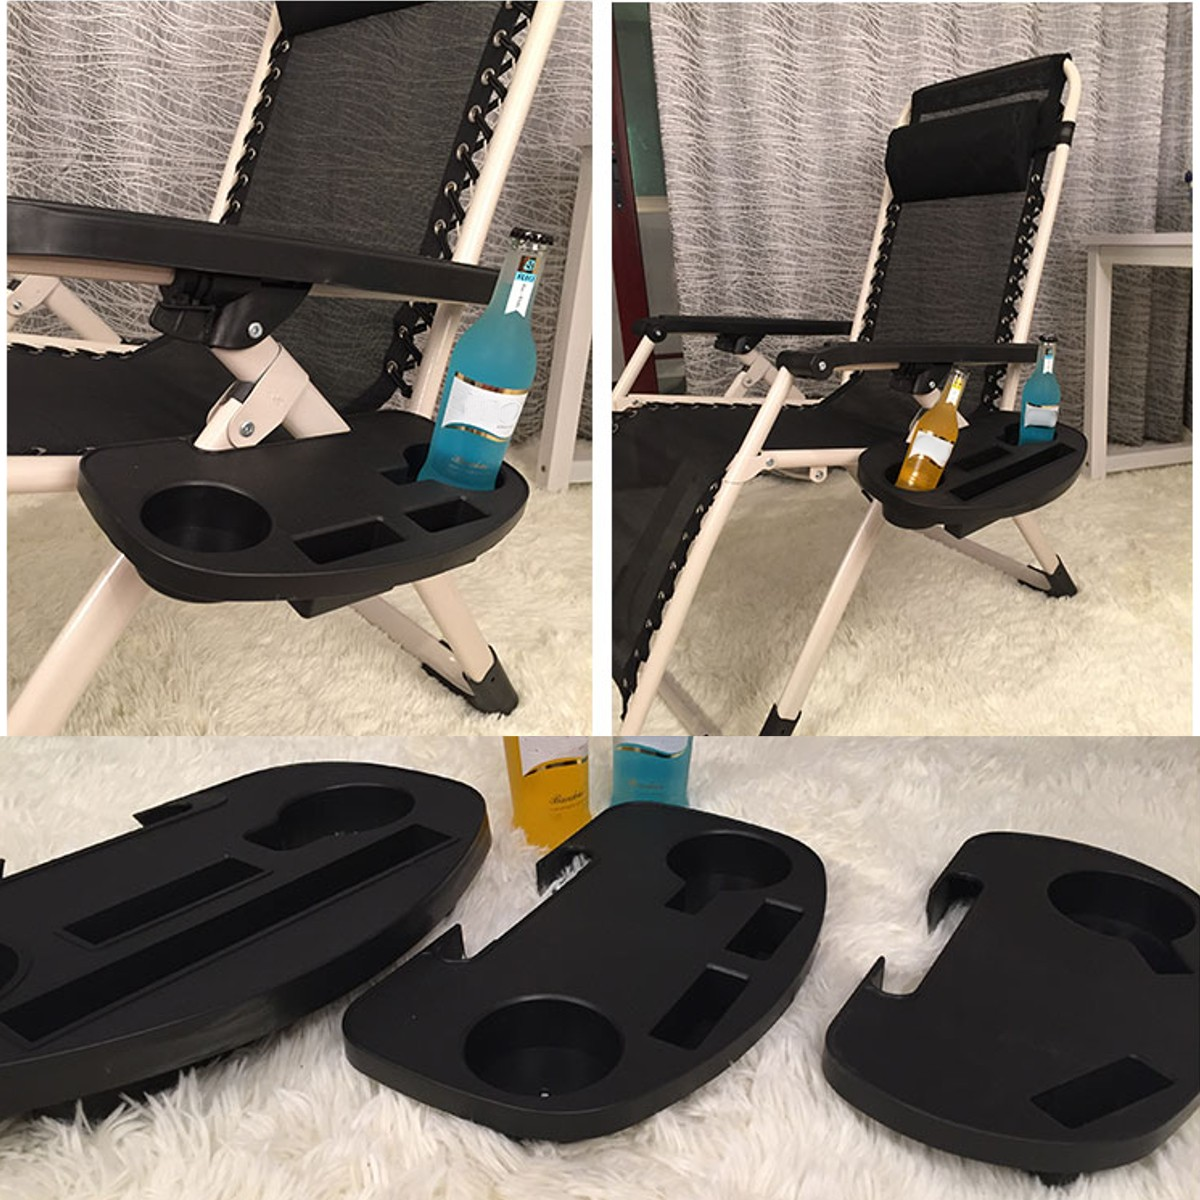 Fishing Chair Drink Cup Can Bottle Holder Chair Side Table Tray Outdoor Camping Beach Chair Water Cup Holder